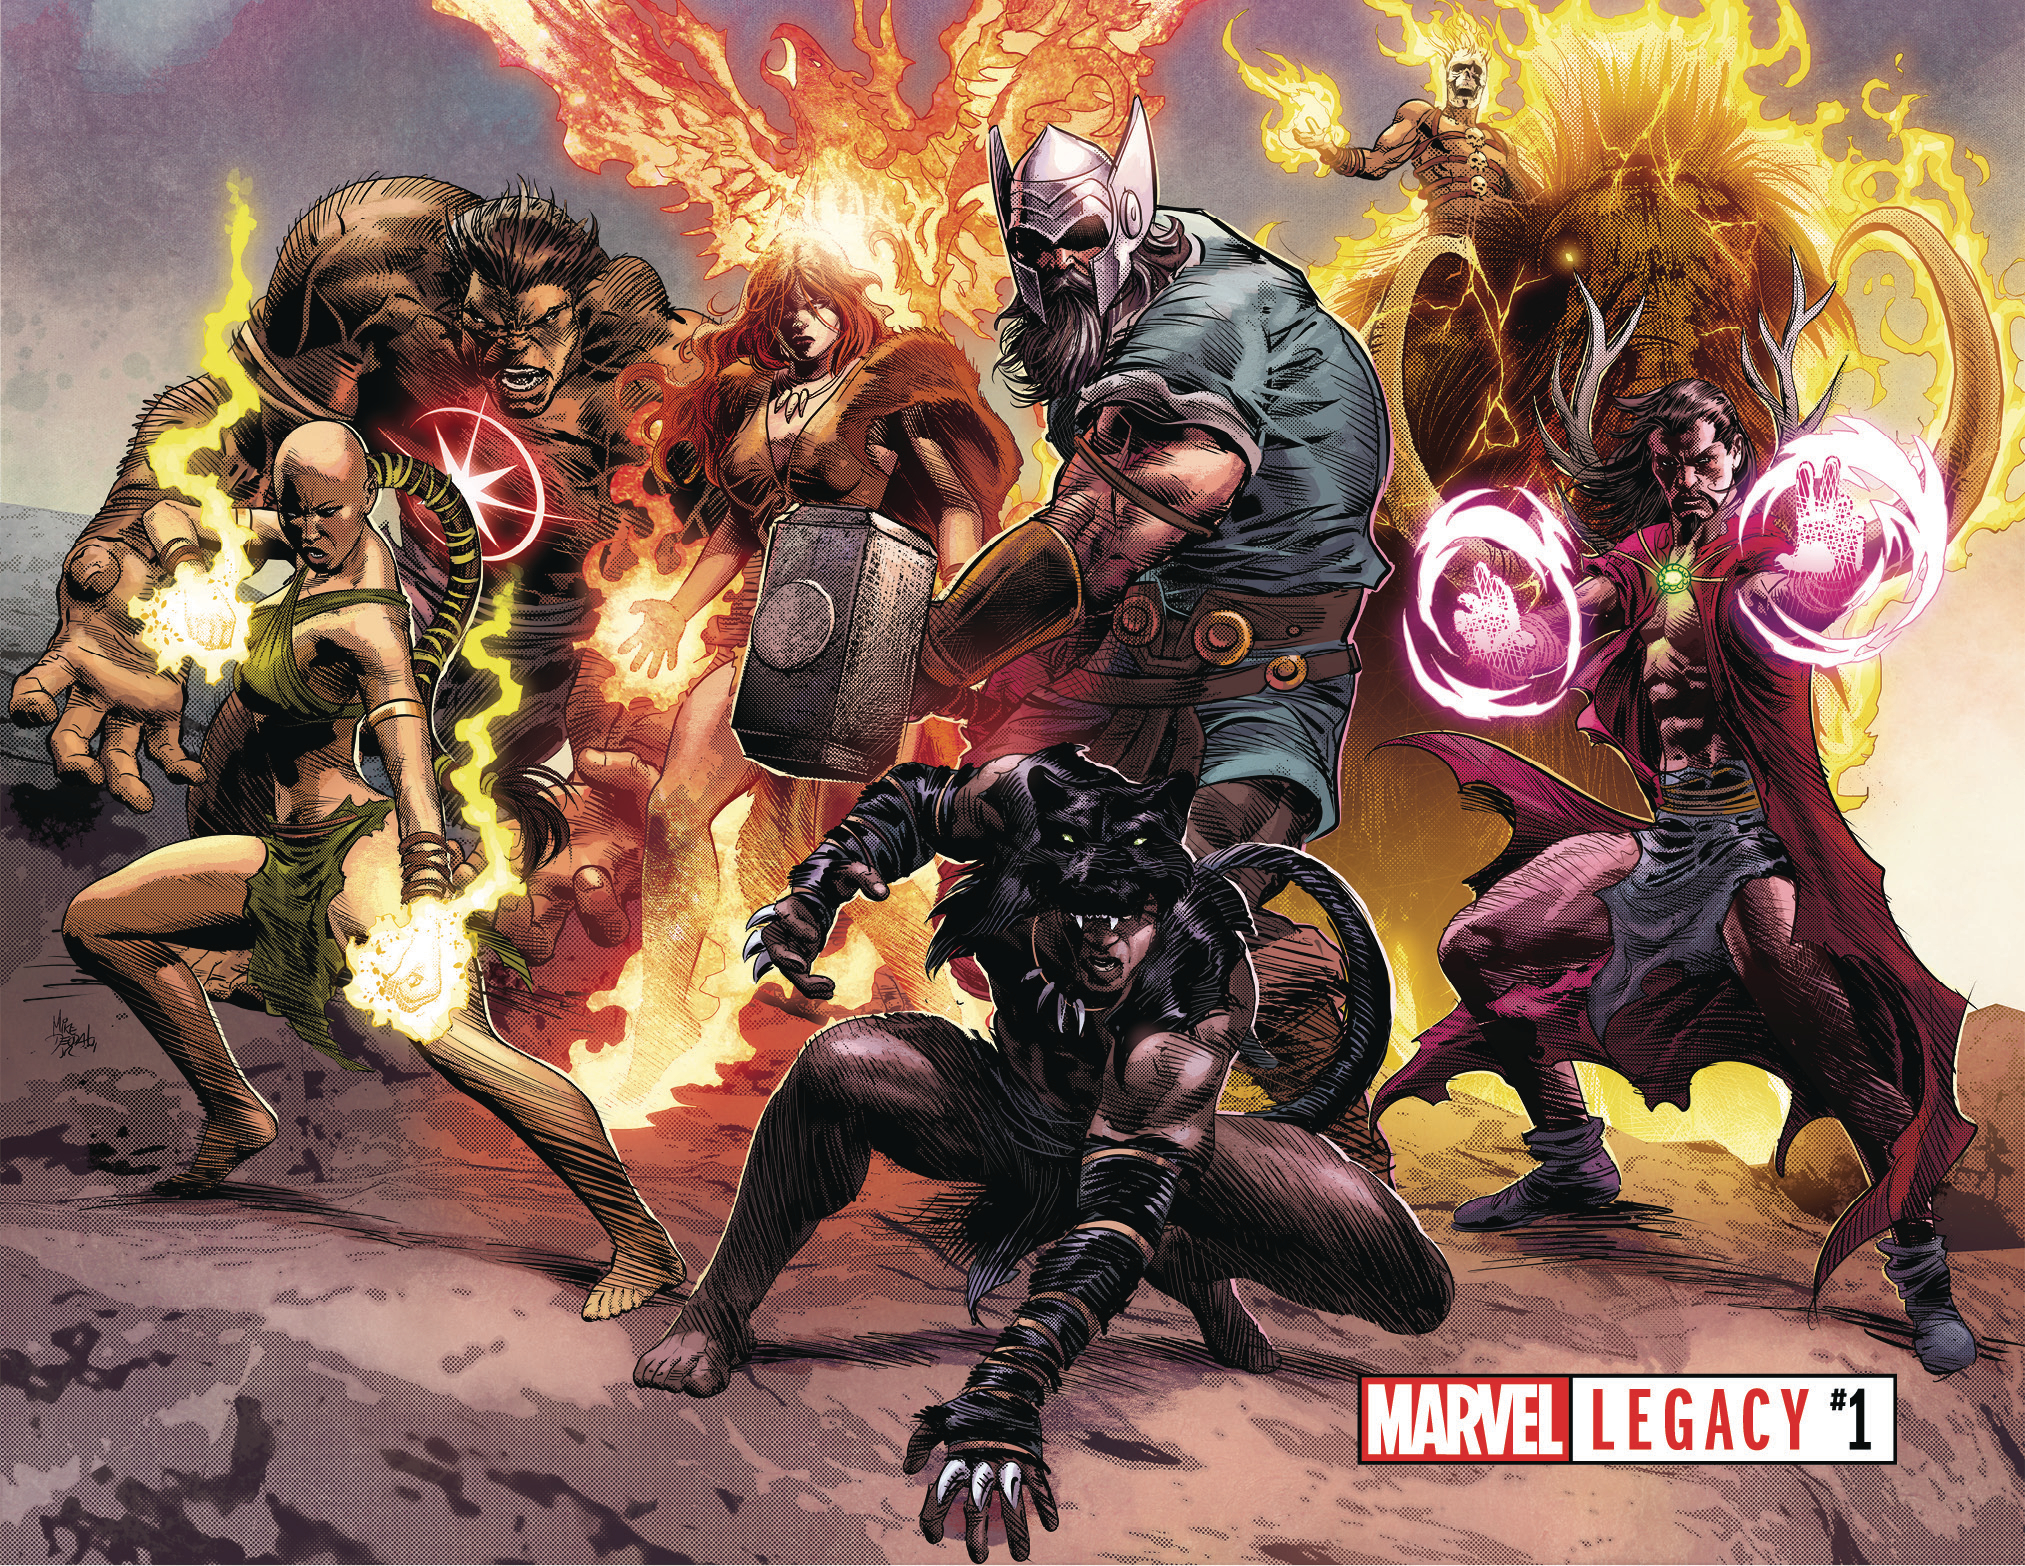 Avengers (1,000,000 BC) (Earth-616)/Gallery